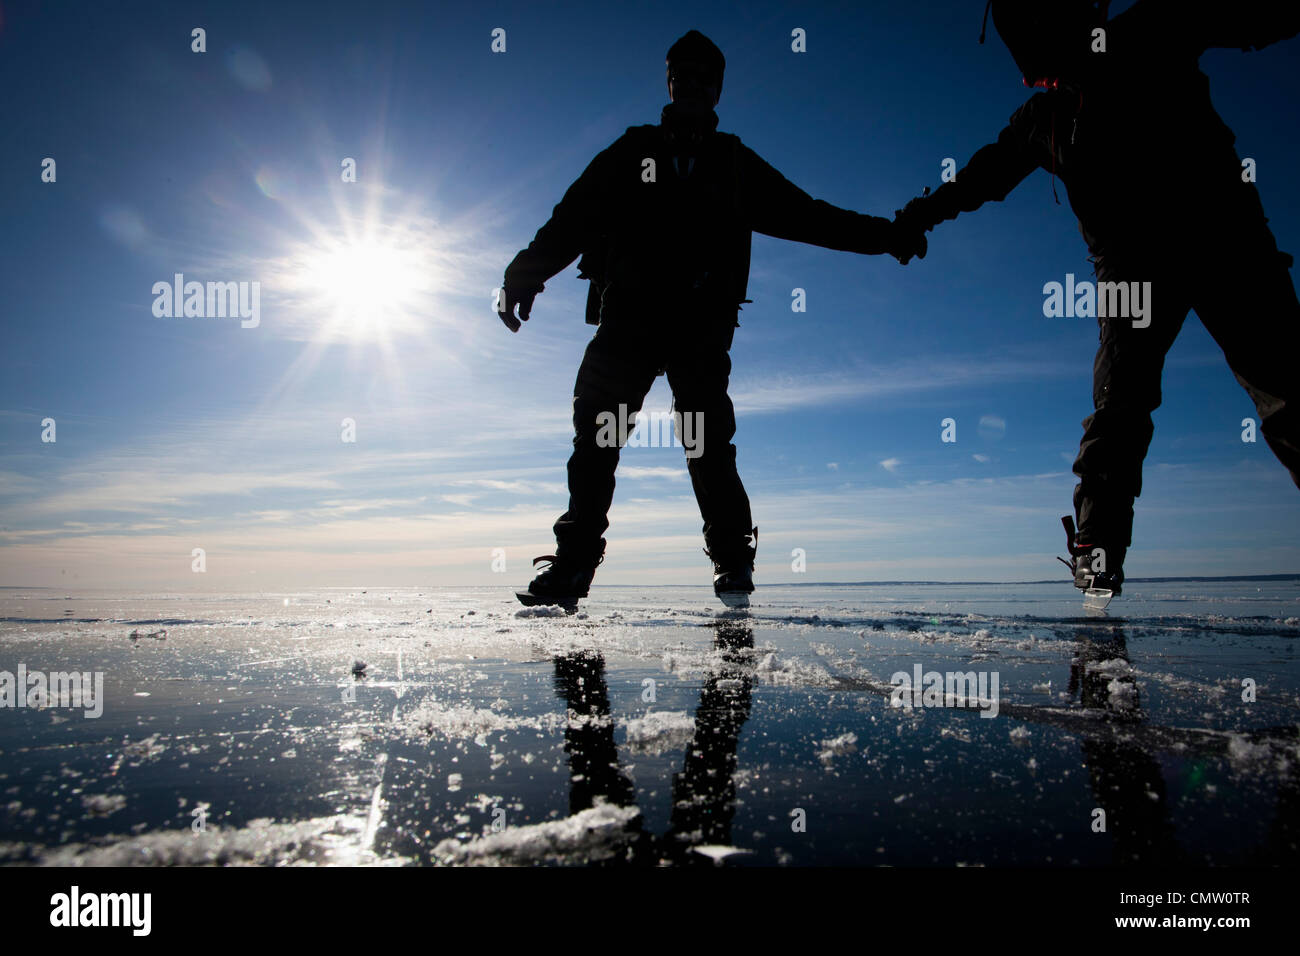 Ice skaters in backlight - Stock Image